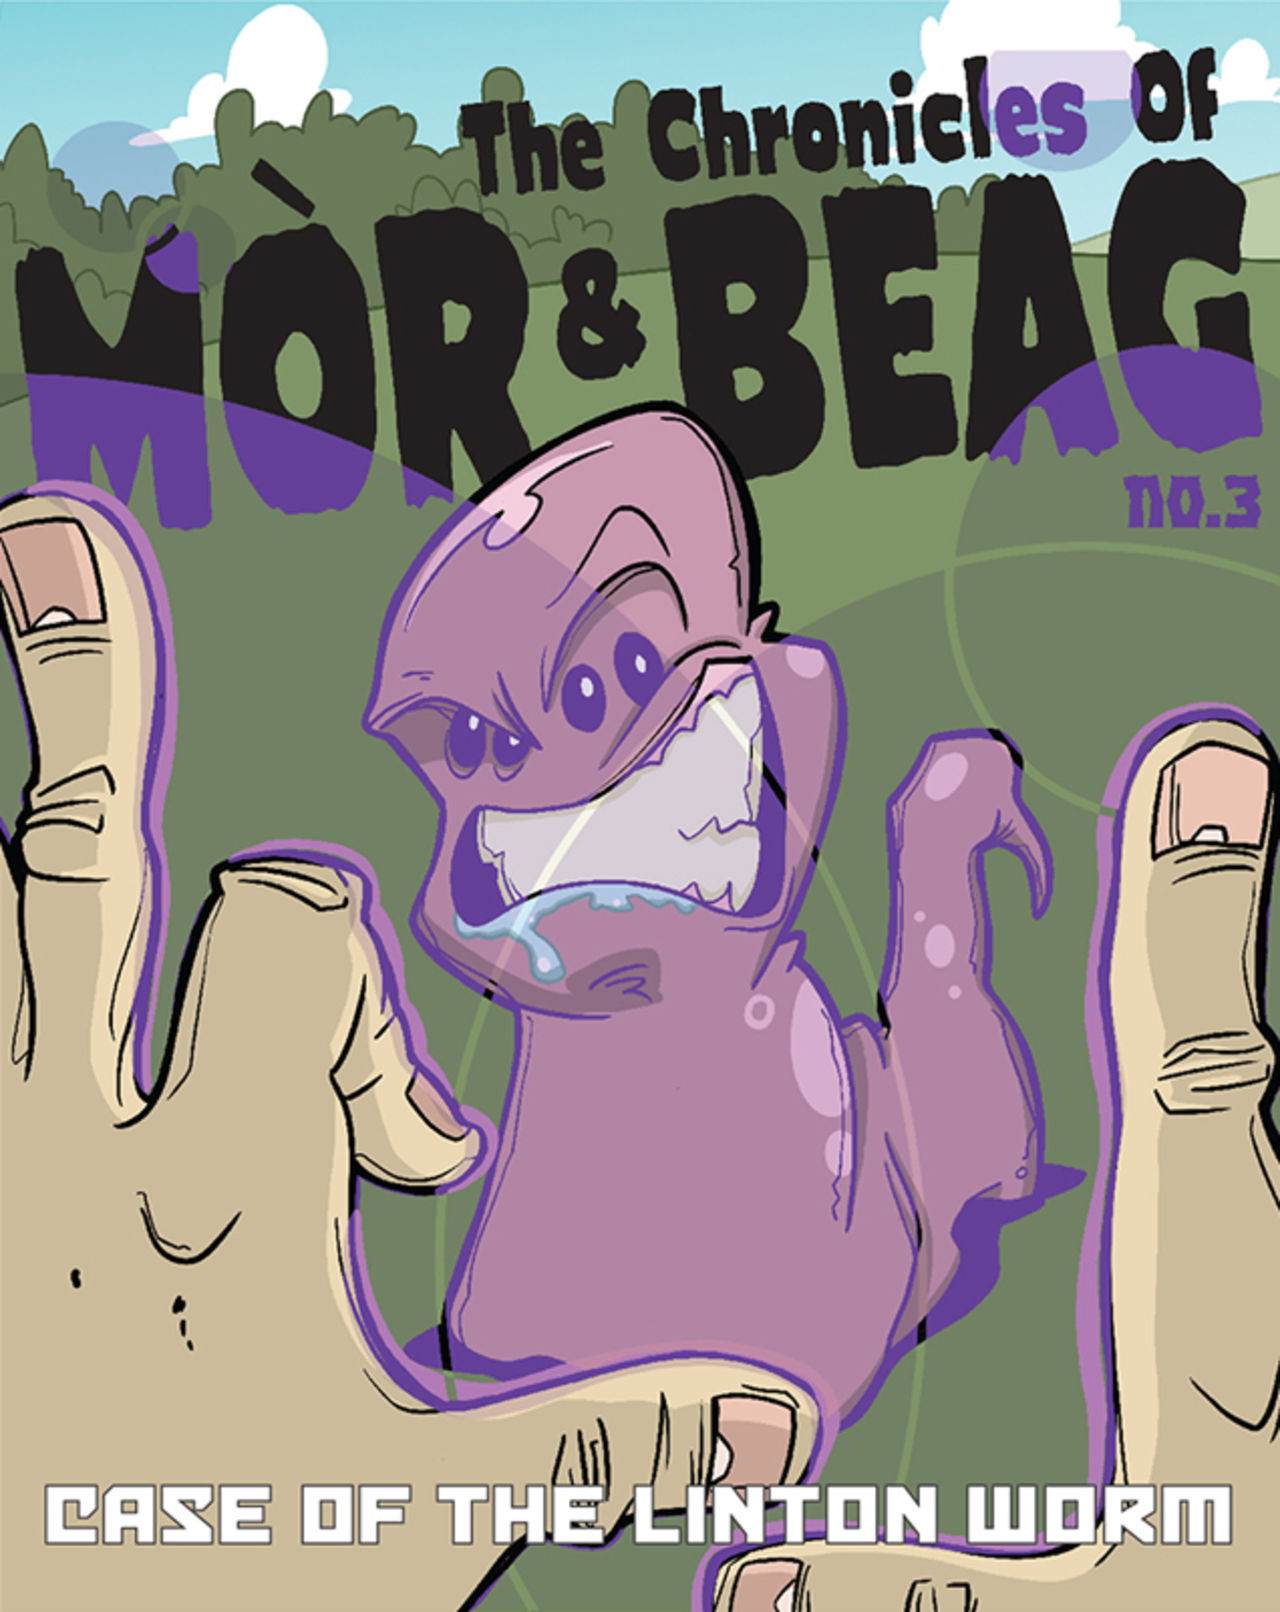 Front cover of part 3 of the webcomic. The Linton Worm can be seen in the distance snarling at Mòr and Beag.